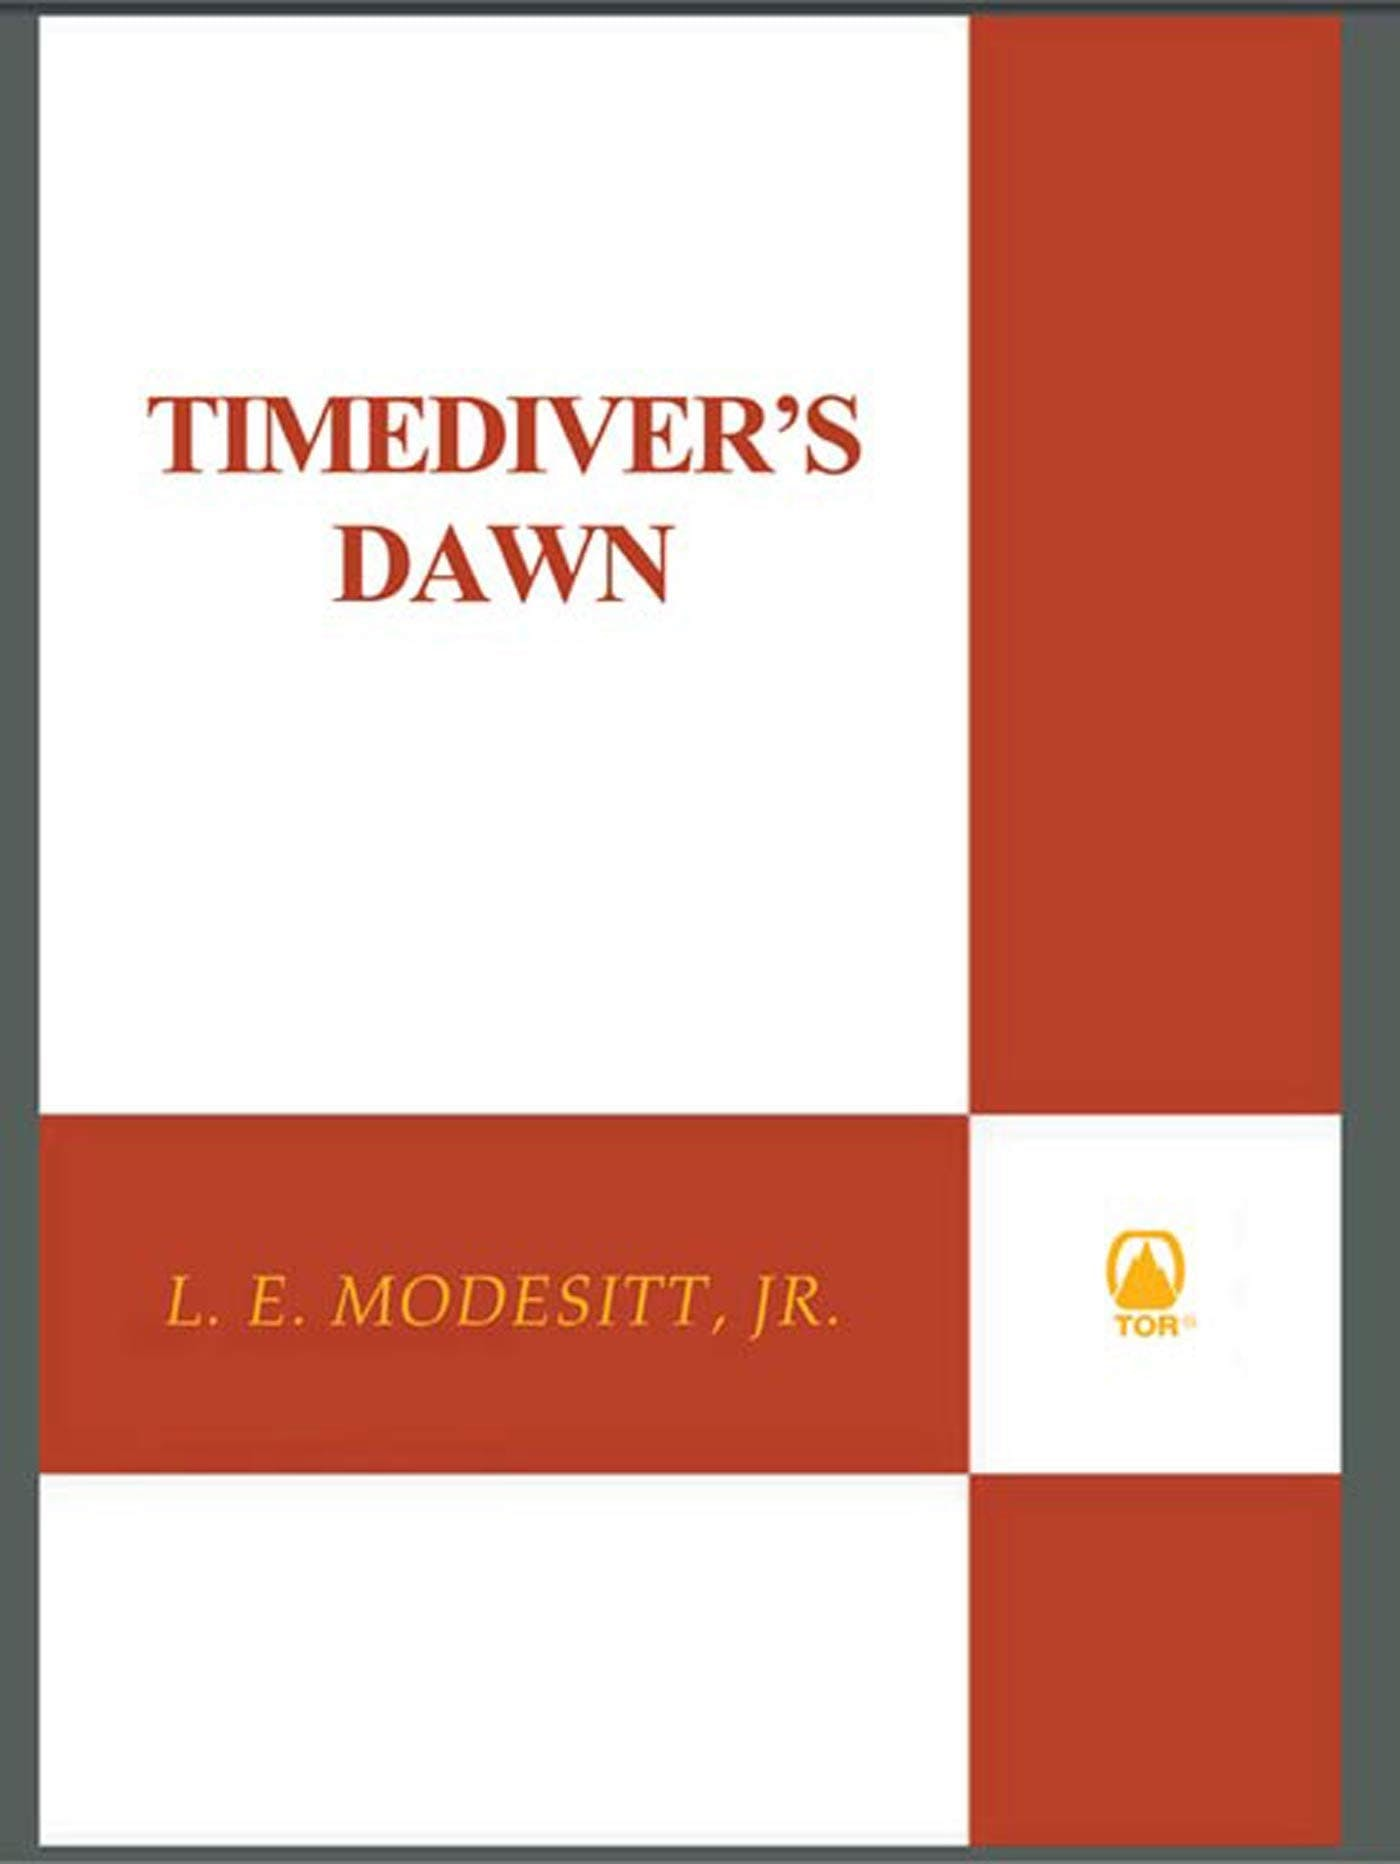 Image of Timediver's Dawn